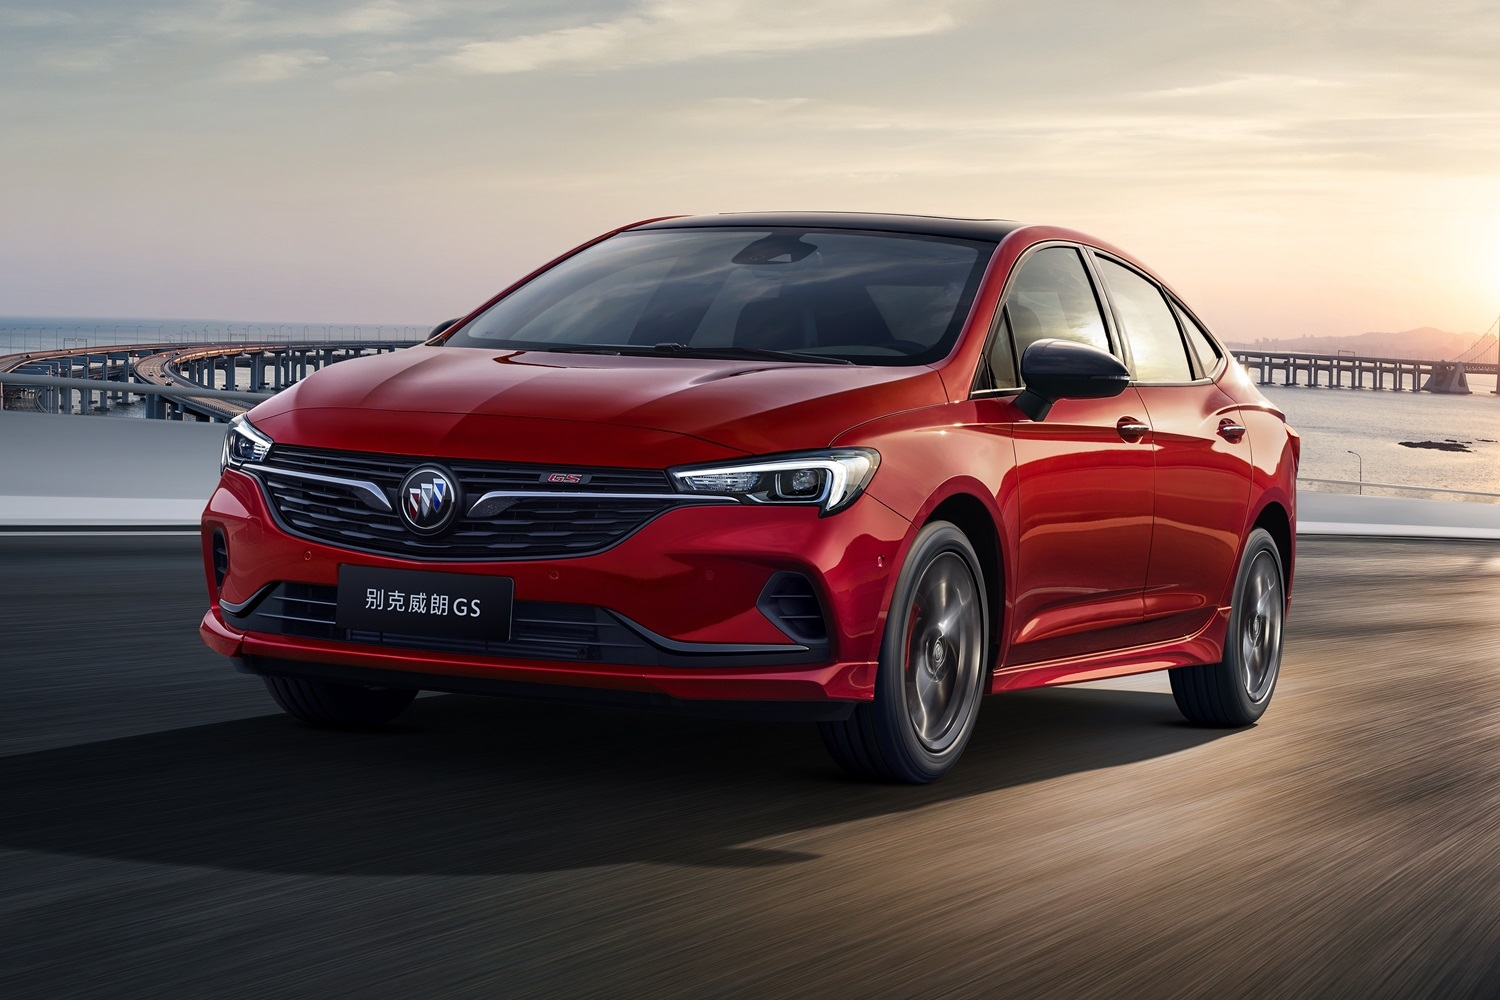 New 2021 Buick Verano Gs Launches In China | Gm Authority New 2022 Buick Verano Trim Levels, Performance Parts, Cost